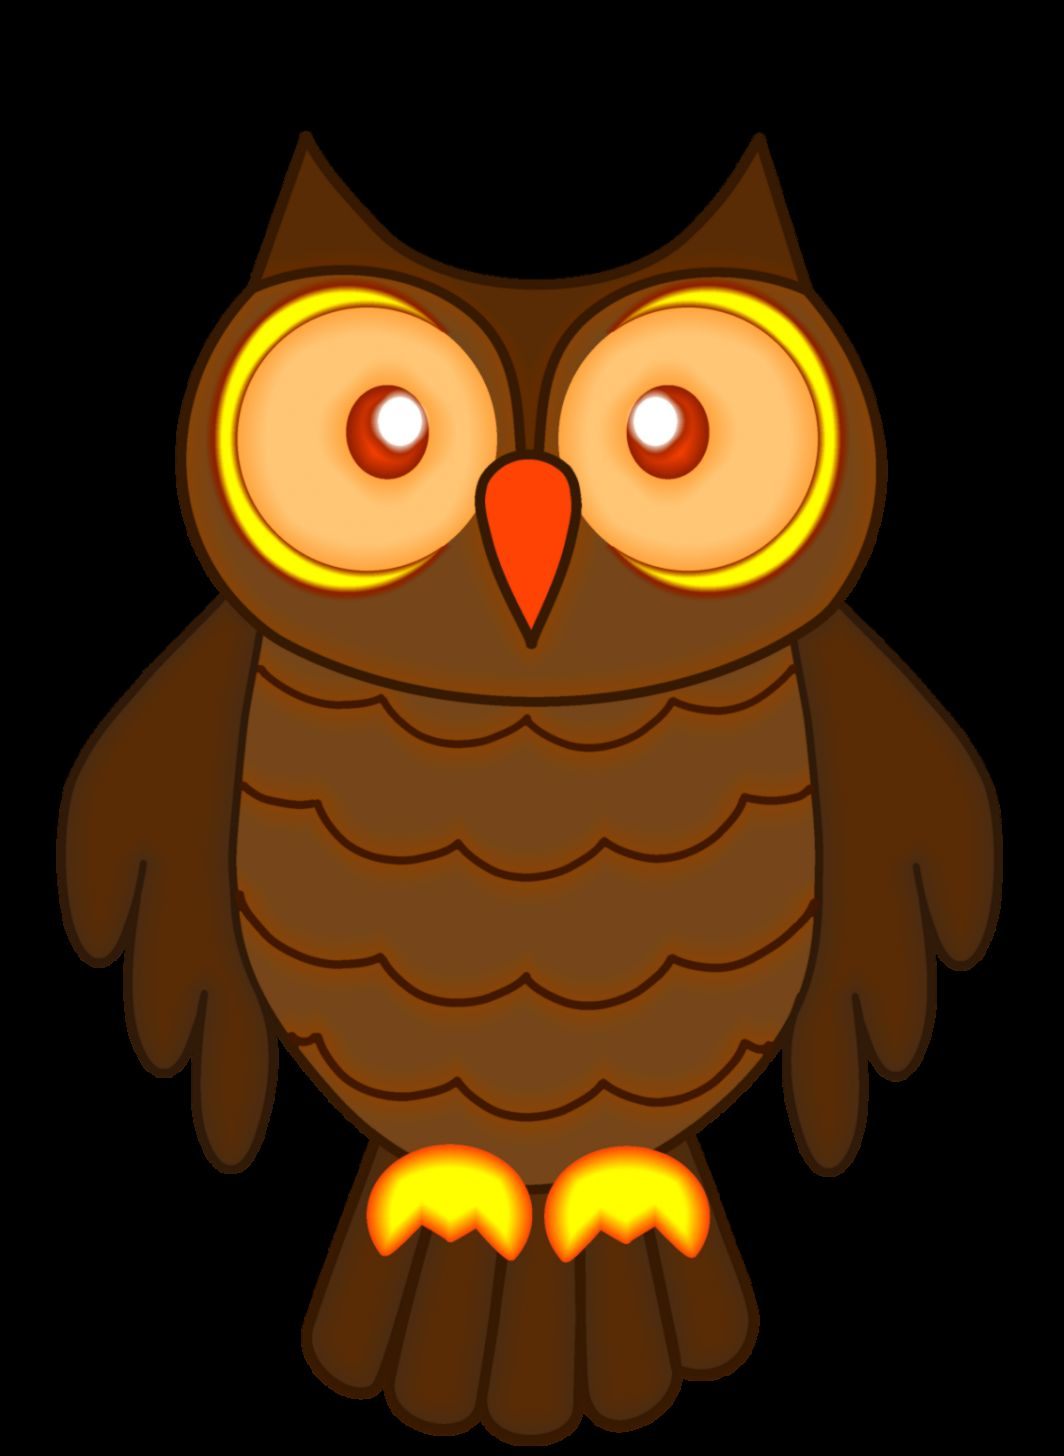 Autumn Owl Clipart   Clipart Kid